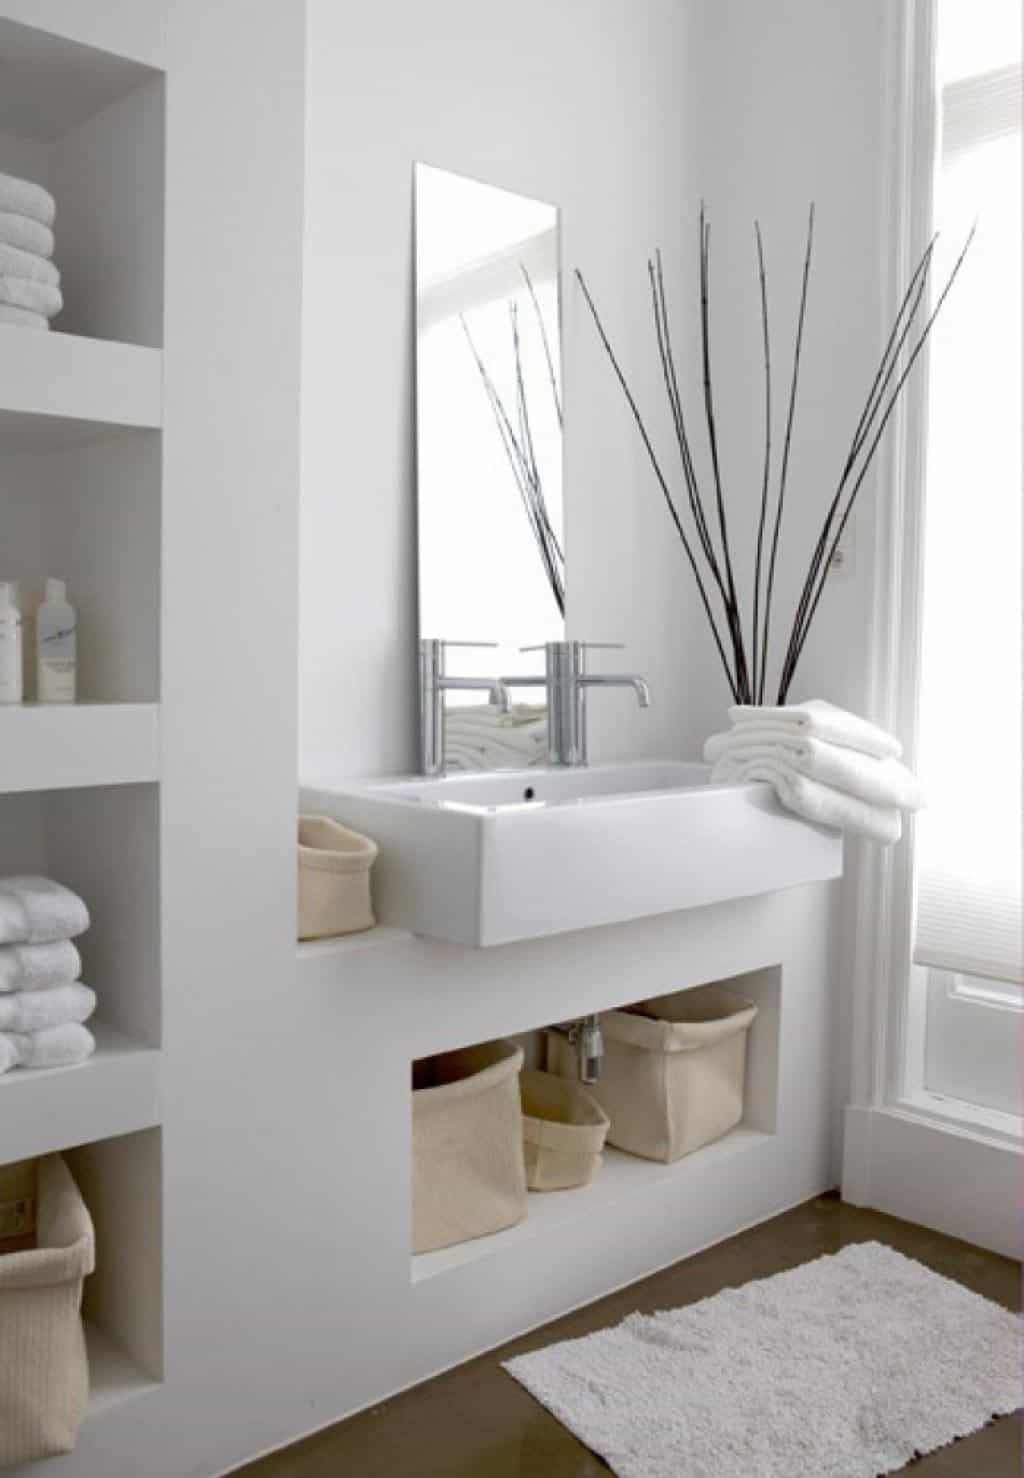 White Spa Bathroom With Rectangular Sink And Chrome Faucets | Living ...